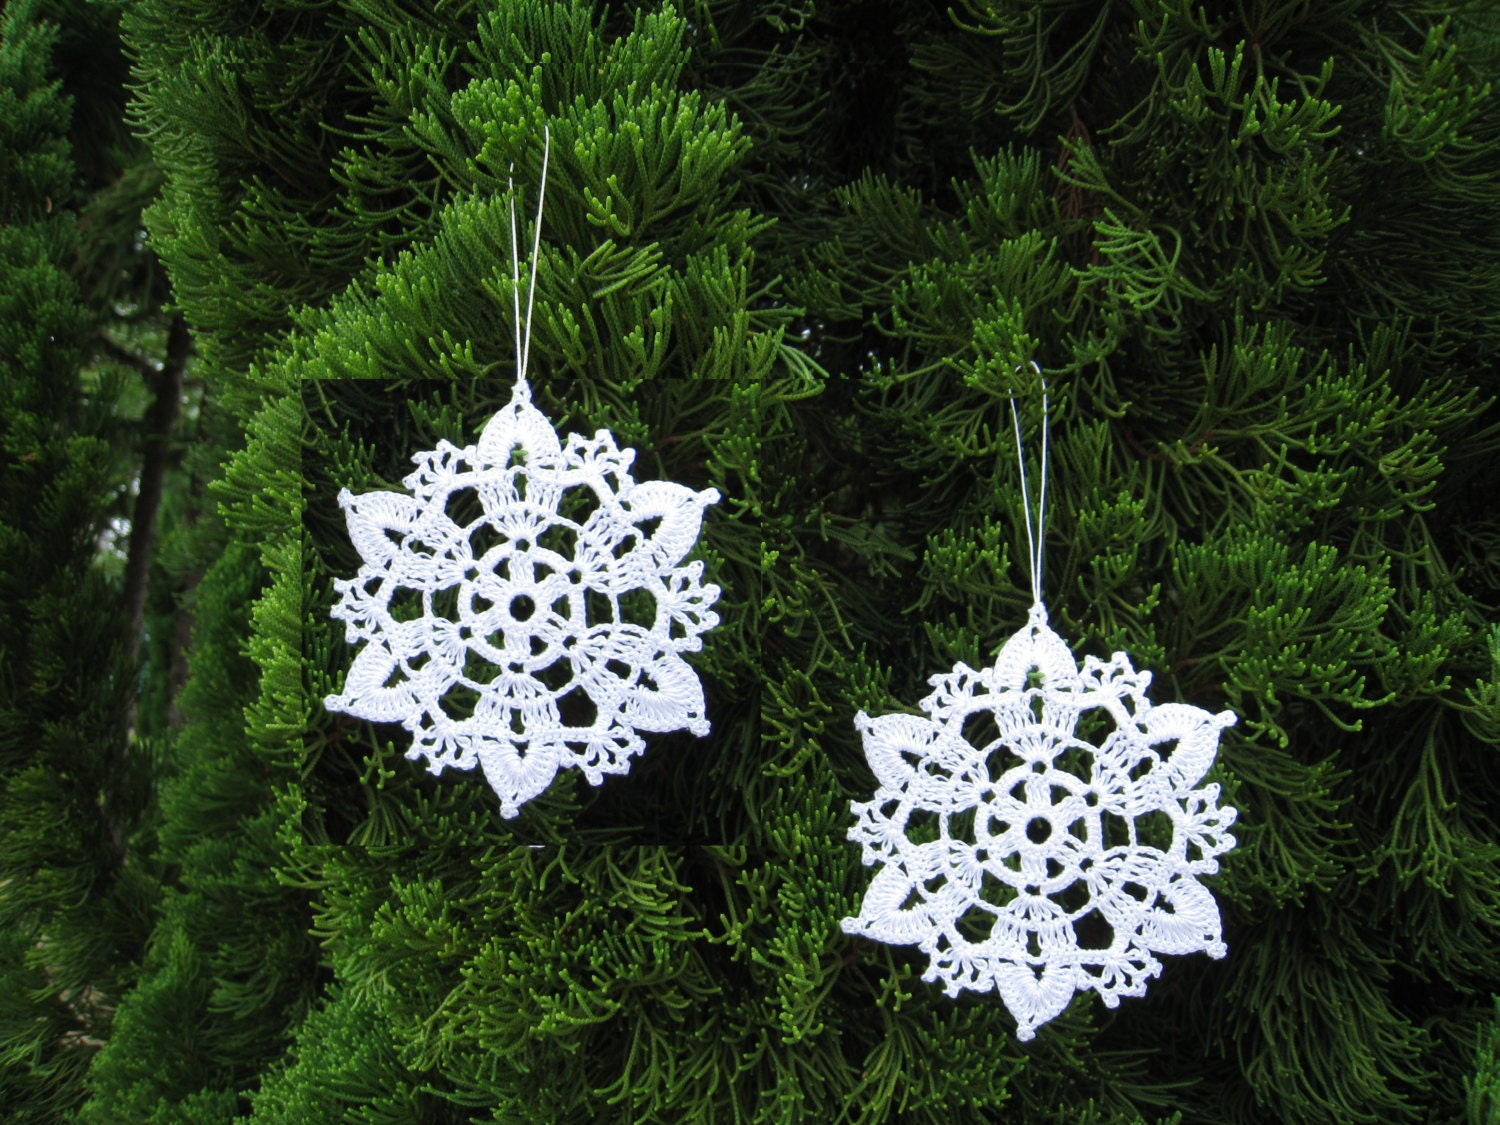 6 crochet snowflake ornaments white christmas tree by dosymphony. Black Bedroom Furniture Sets. Home Design Ideas